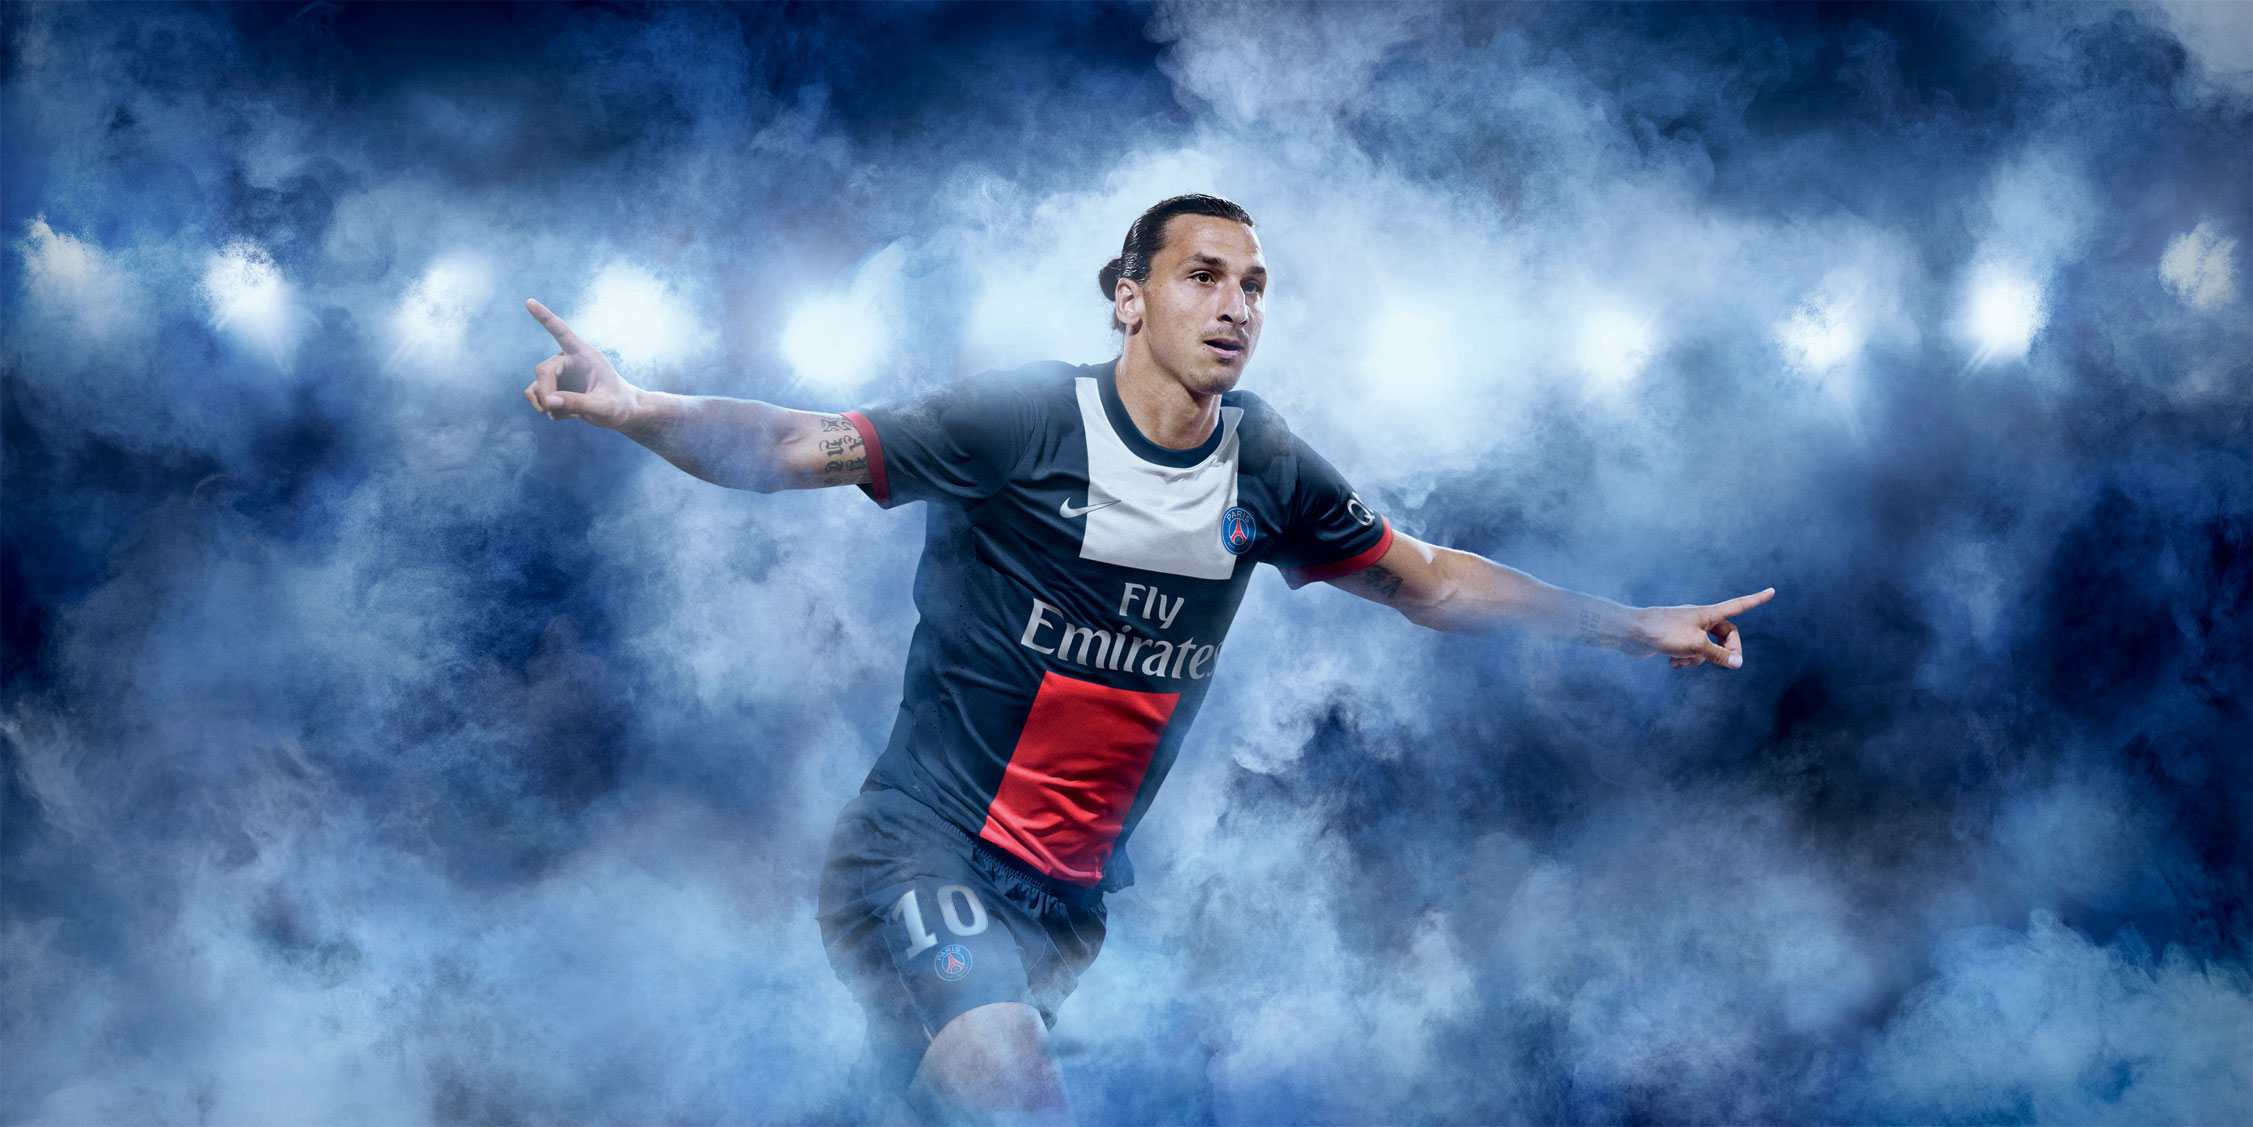 Image From Svensktspelnu Wp Content Uploads 2015 03 Zlatan Ibrahimovic PSG Wallpaper